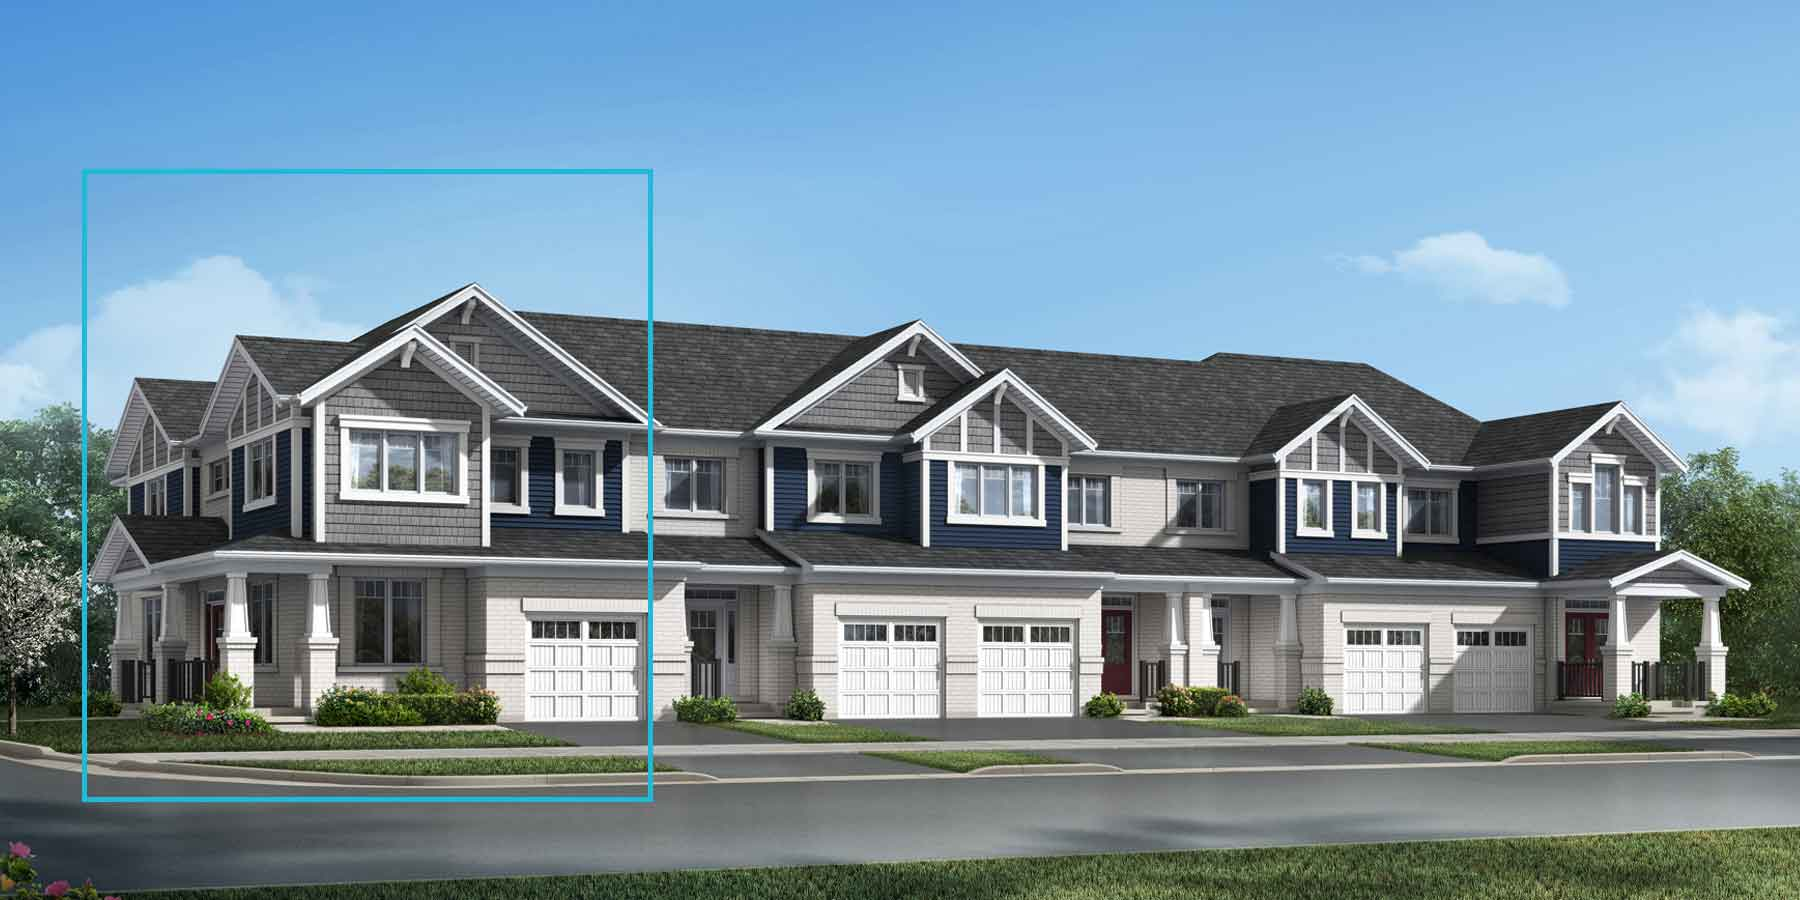 The Wellesley Corner Plan TownHomes at Wildflower Crossing in Kitchener Ontario by Mattamy Homes